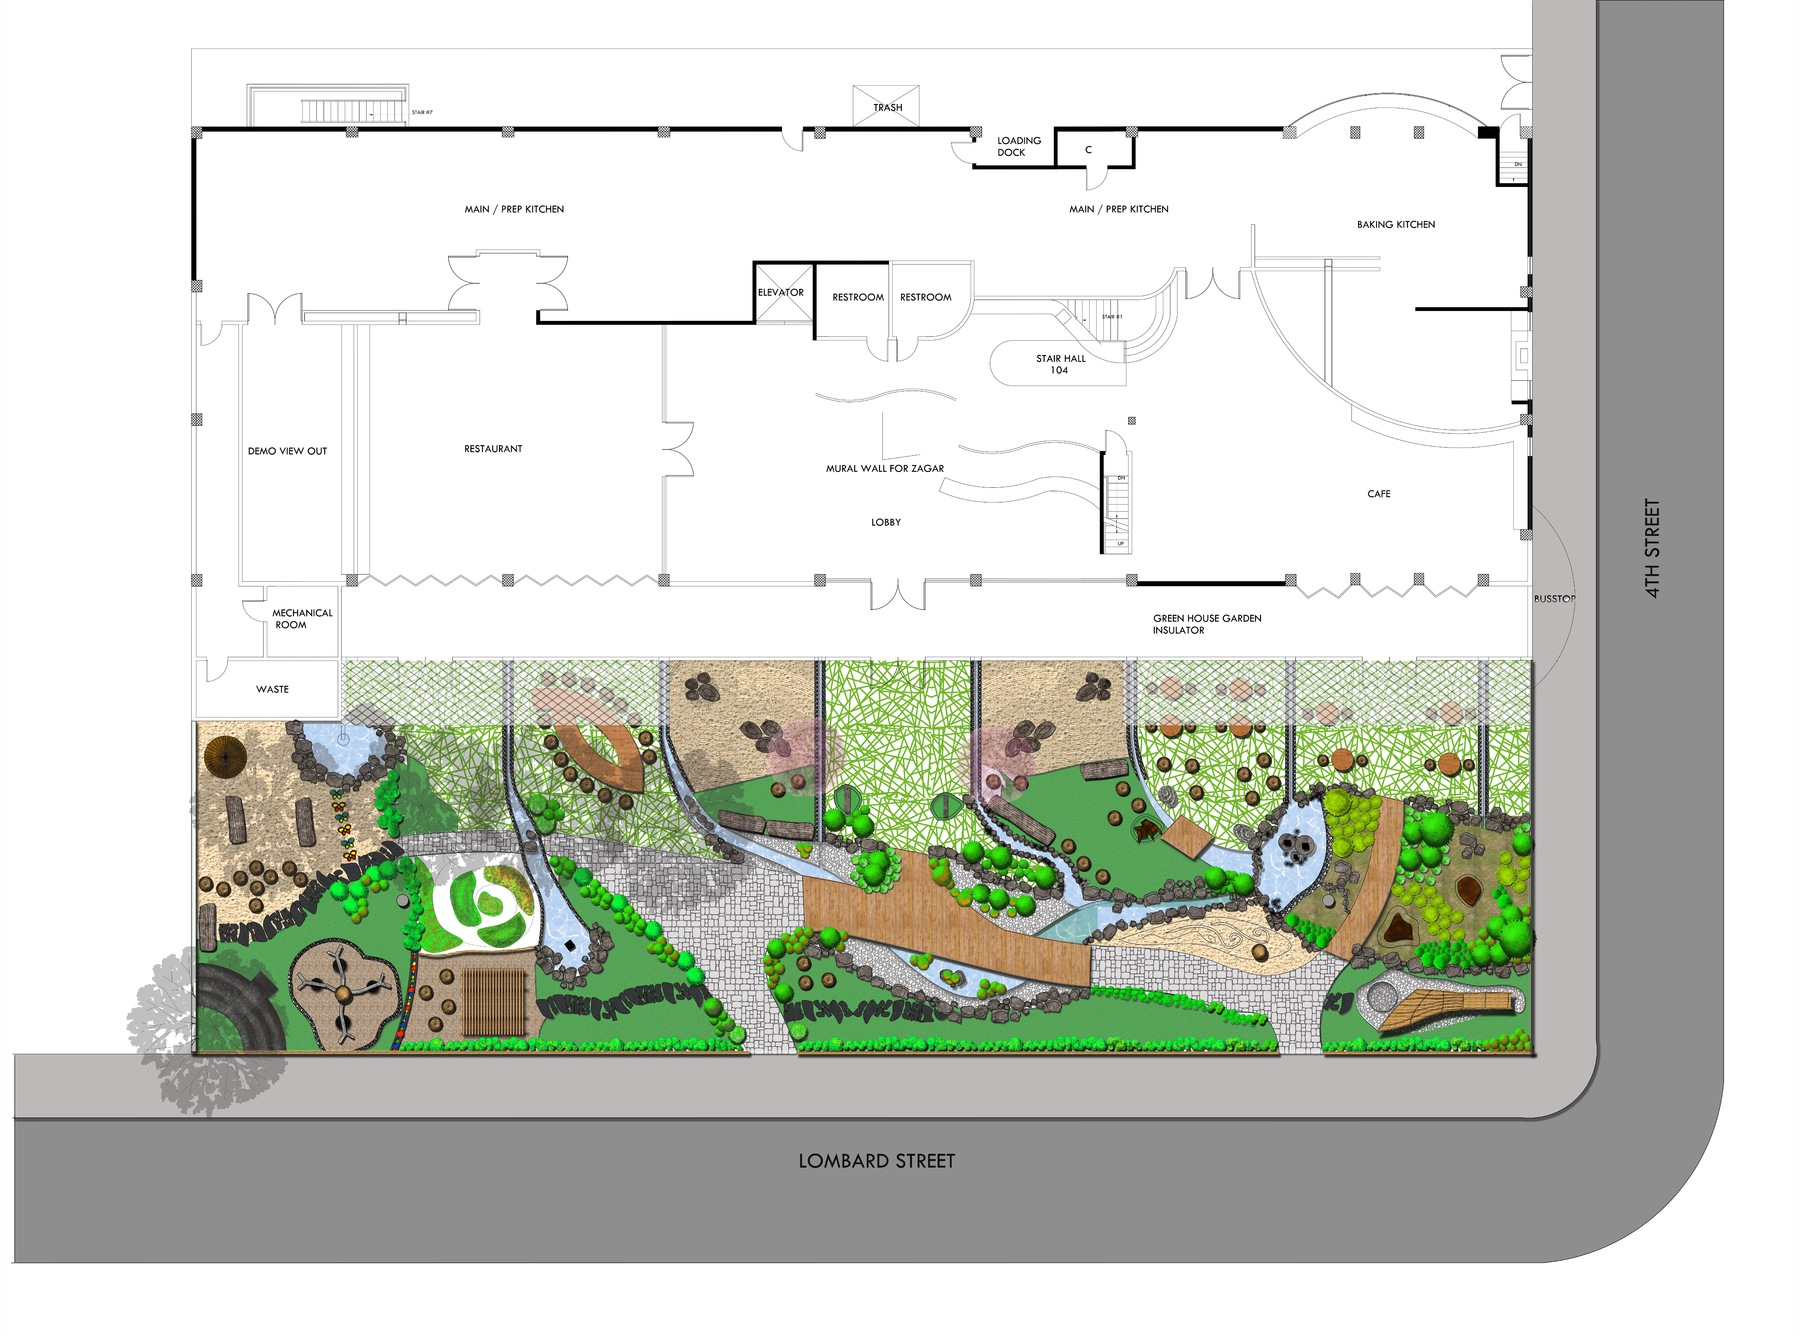 Sustainable Landscape Design for Culinary School Design works